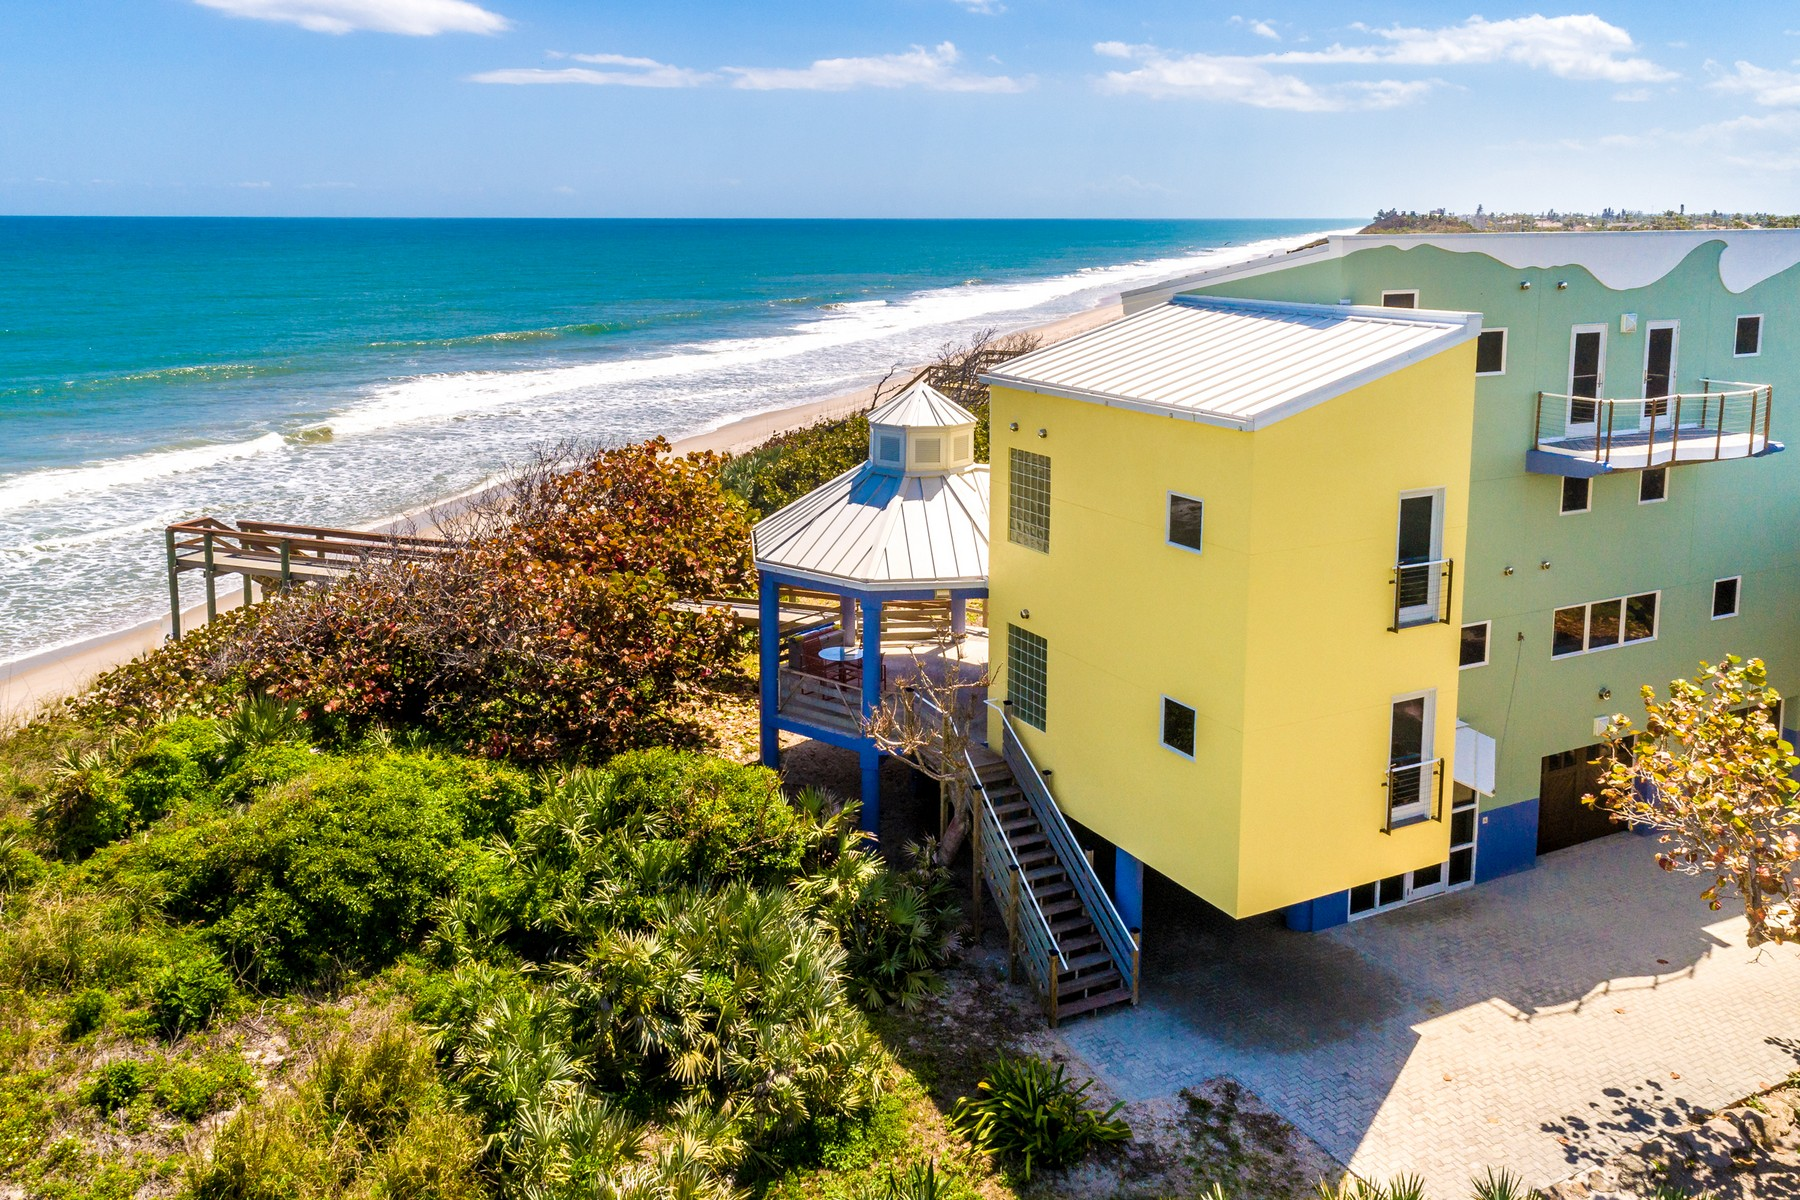 Property のために 売買 アット Spectacular Oceanfront Home Bordering Nature Preserve. 4515 Highway A1A Melbourne Beach, フロリダ 32951 アメリカ